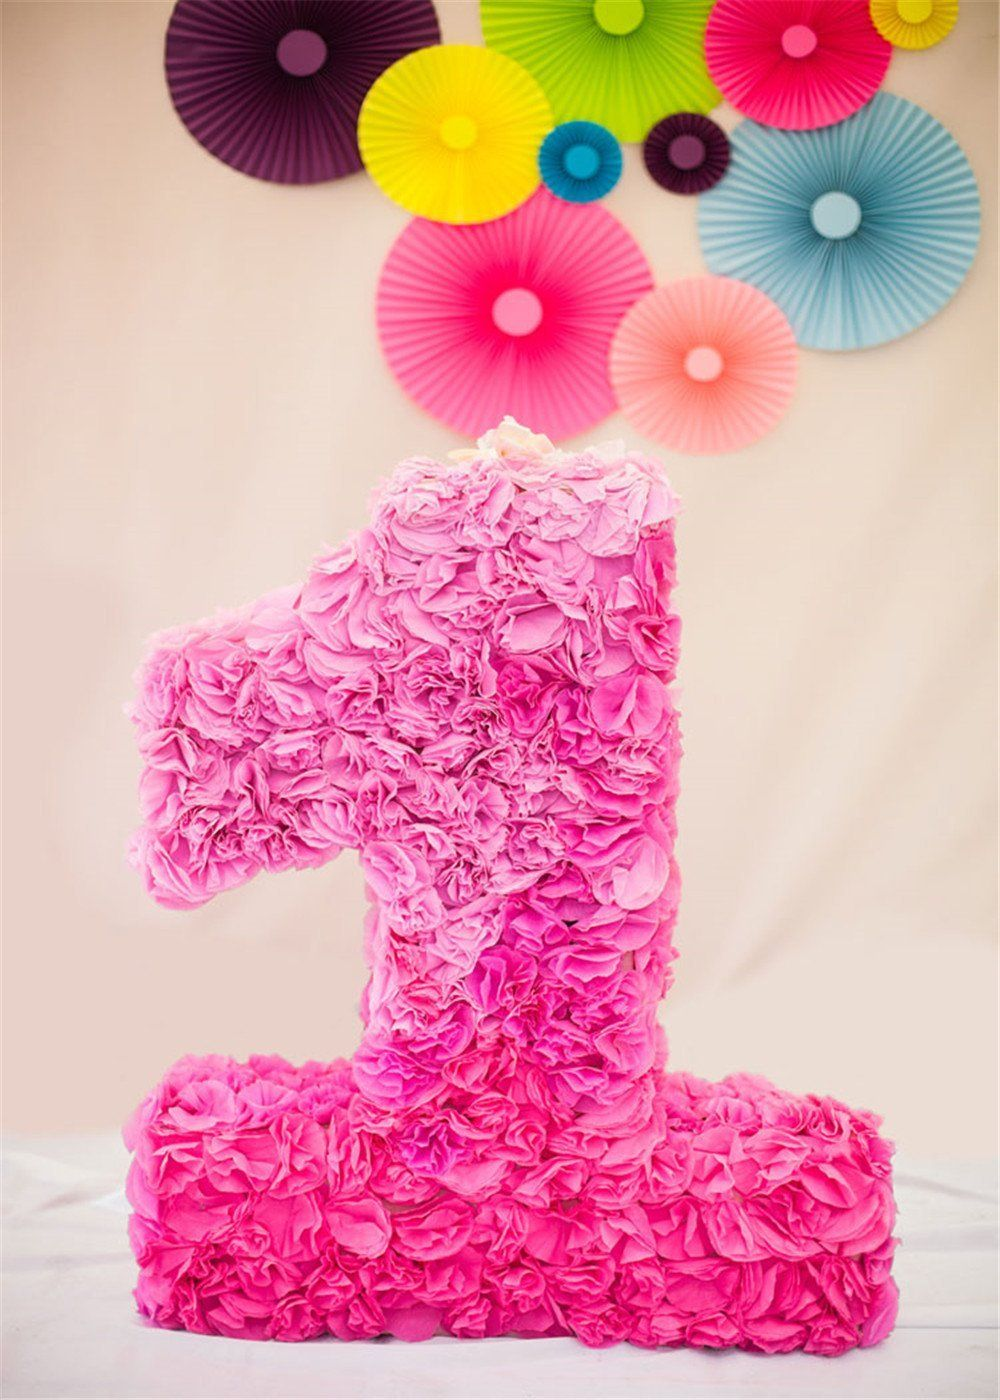 Amazon Com 5x7ft 1st Birthday Photography Backdrops Pink Flowers Background For Baby Backdrop Shoot Wrin Birthday Background Pink Backdrop Birthday Backdrop